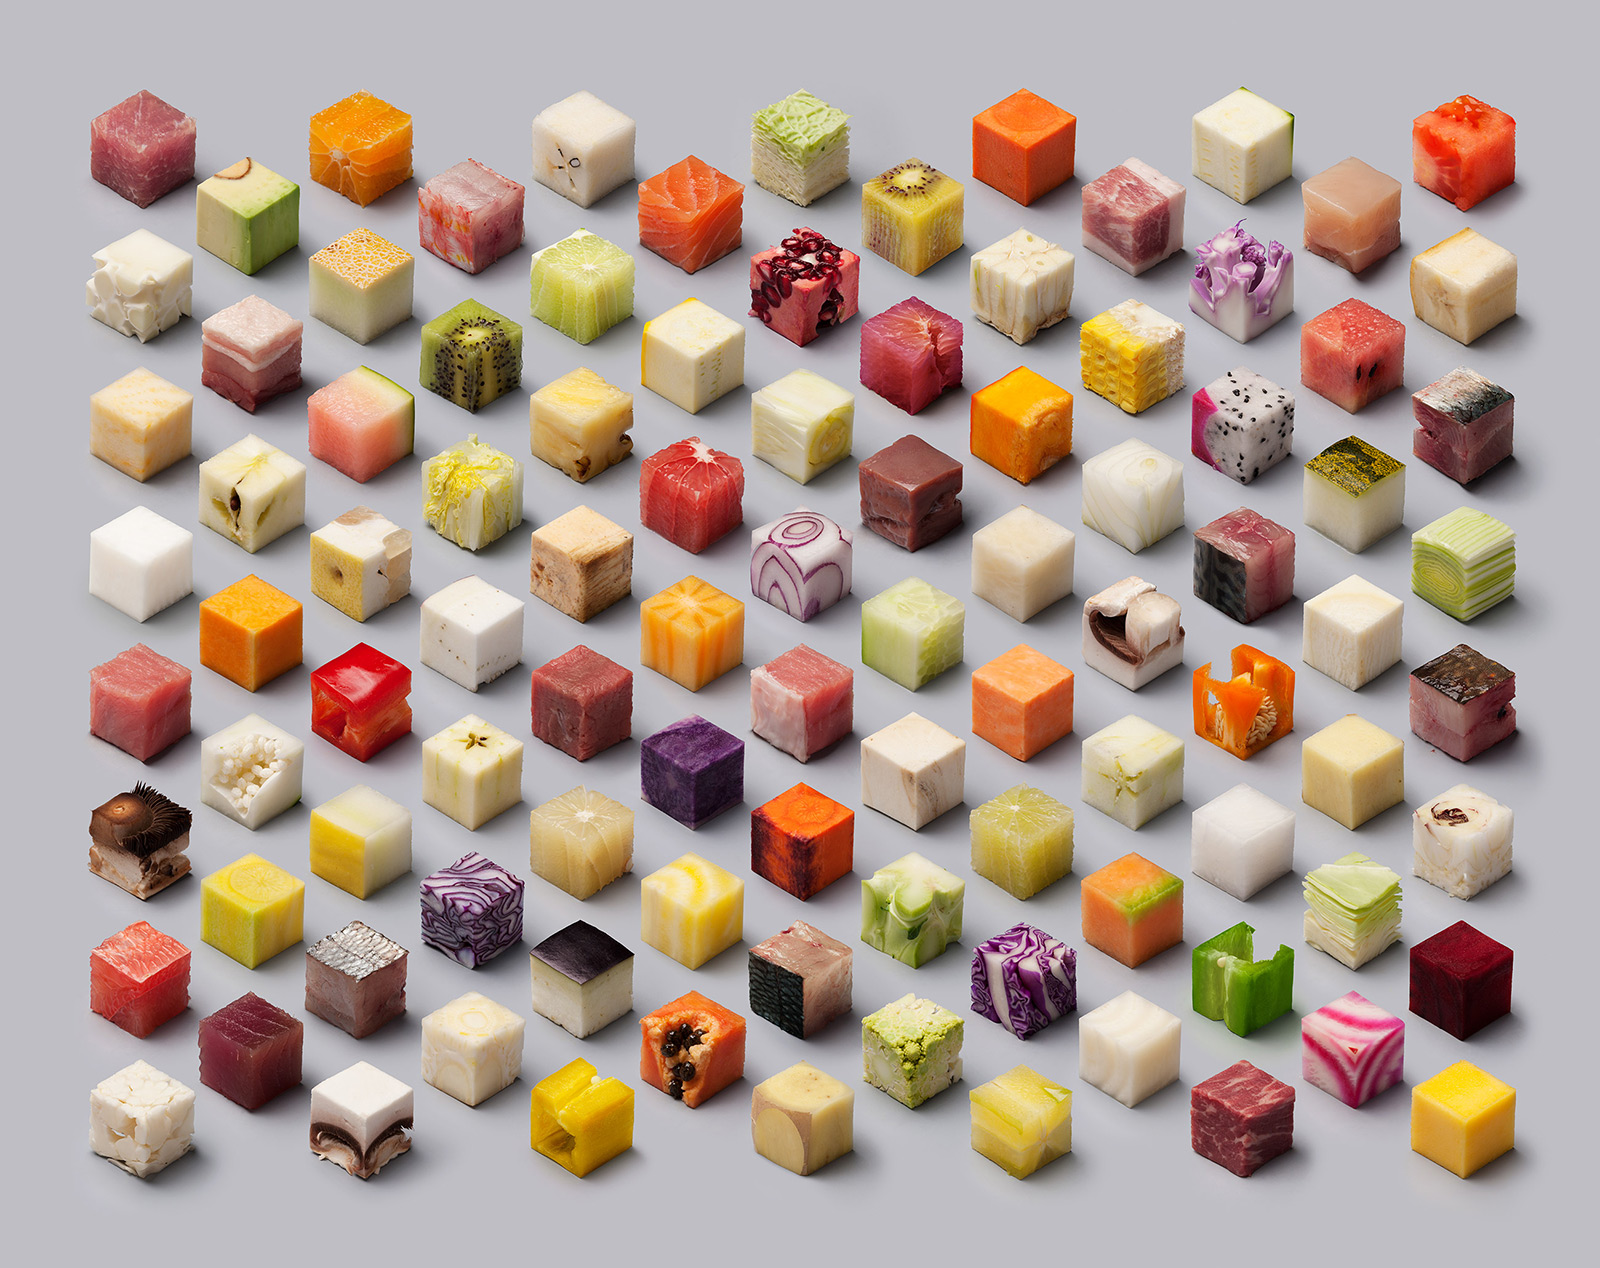 A Variety of Unprocessed Foods Cut into Uncannily Precise 2.5cm Cubes by Lernert & Sander (5 pics)